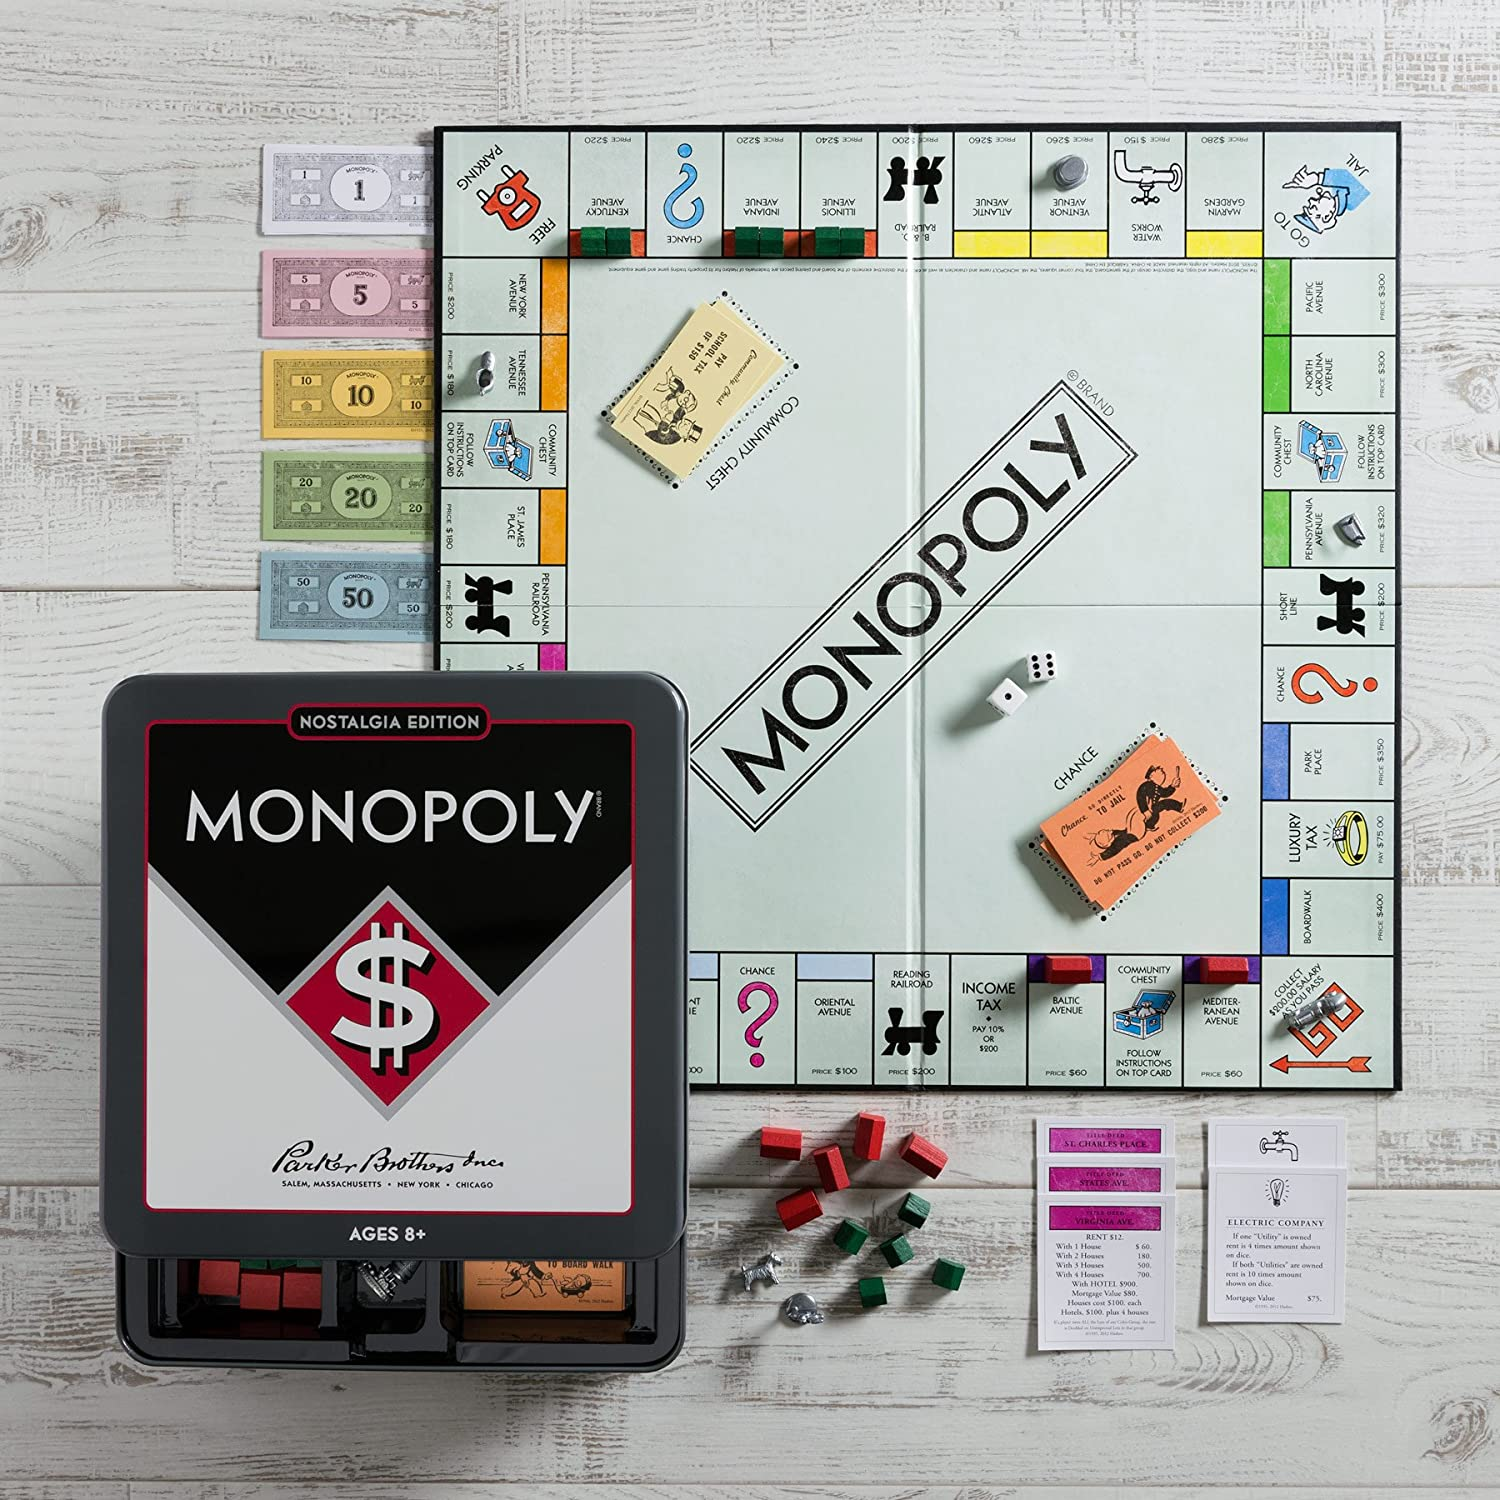 Monopoly Nostalgia Tin by Winning Solutions by Winning Solutions: Amazon.es: Juguetes y juegos